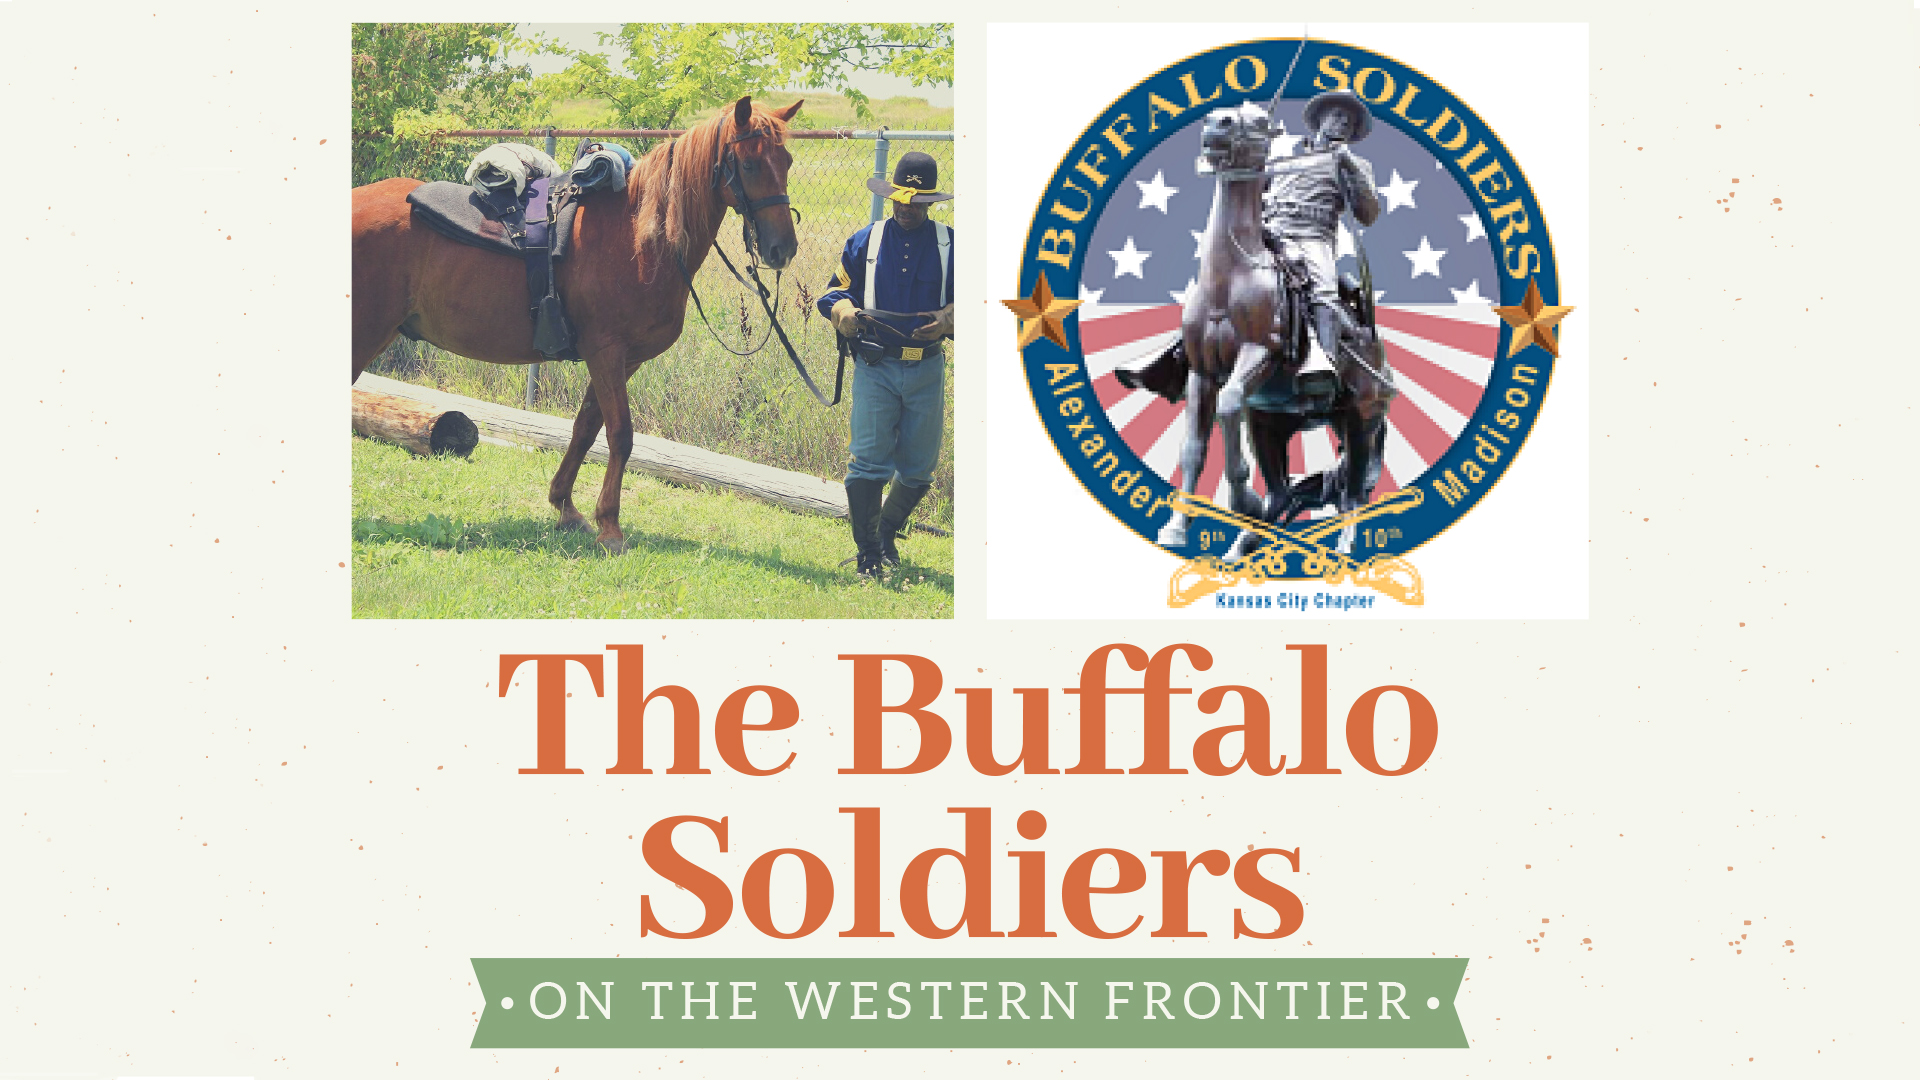 The Buffalo Soldiers on the Western Frontier